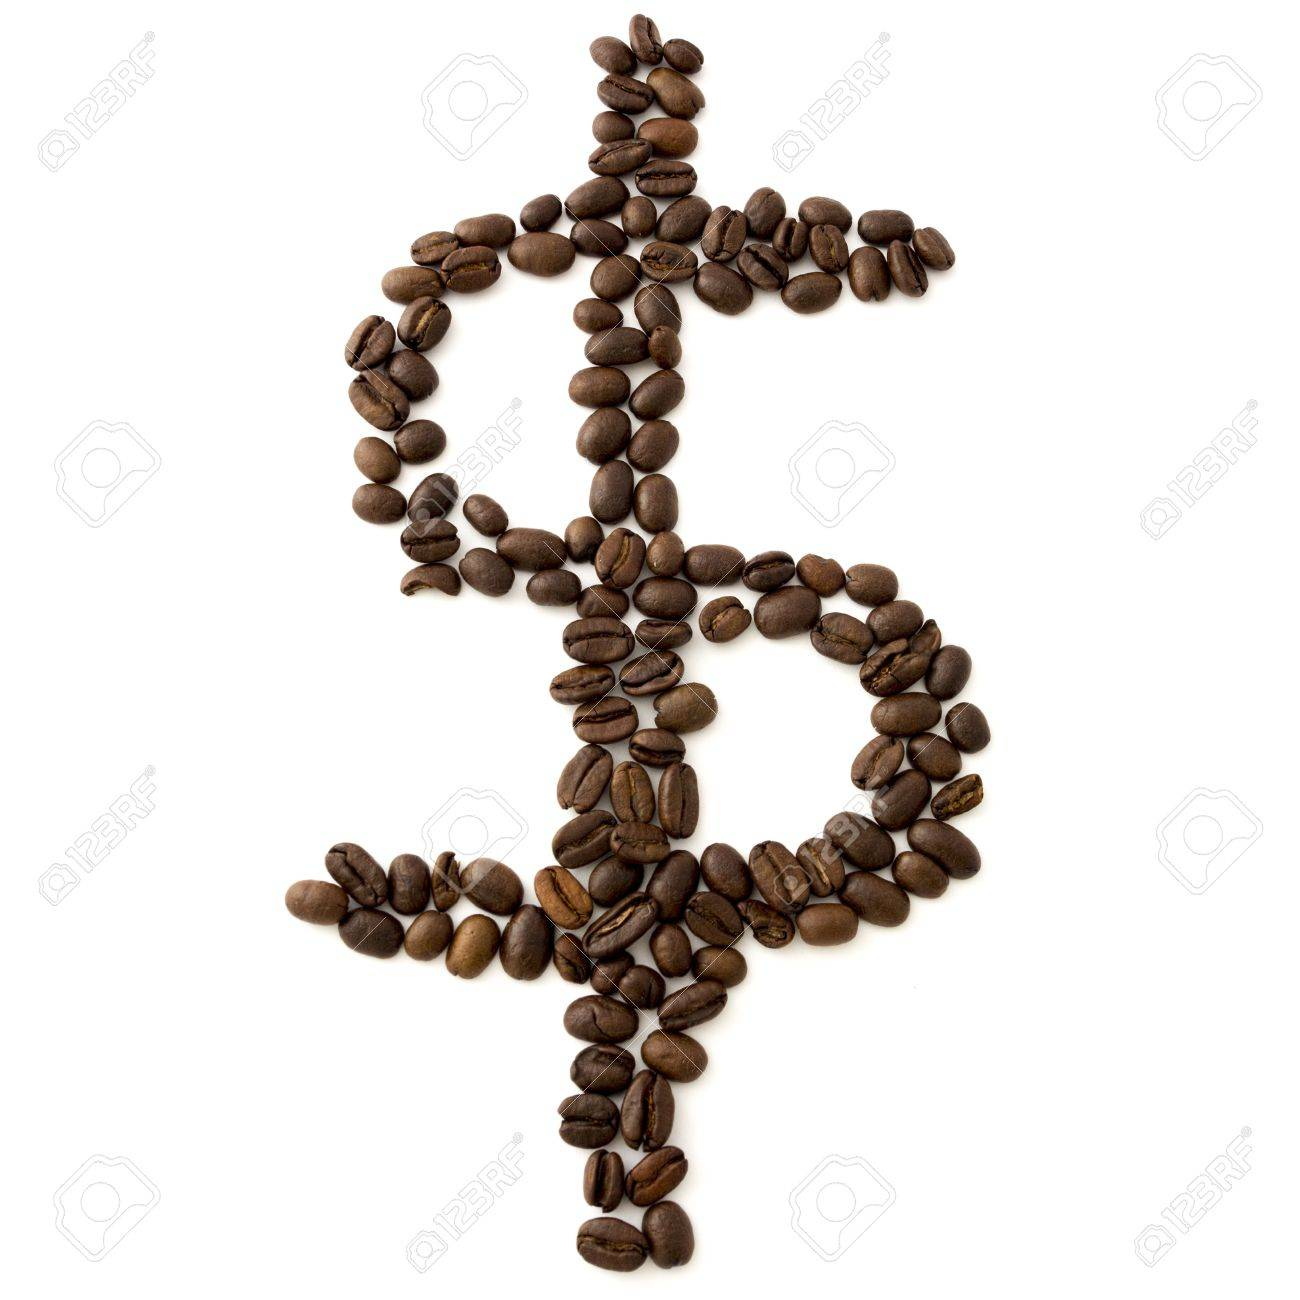 Coffee beans dollar sign Stock Photo - 17454590